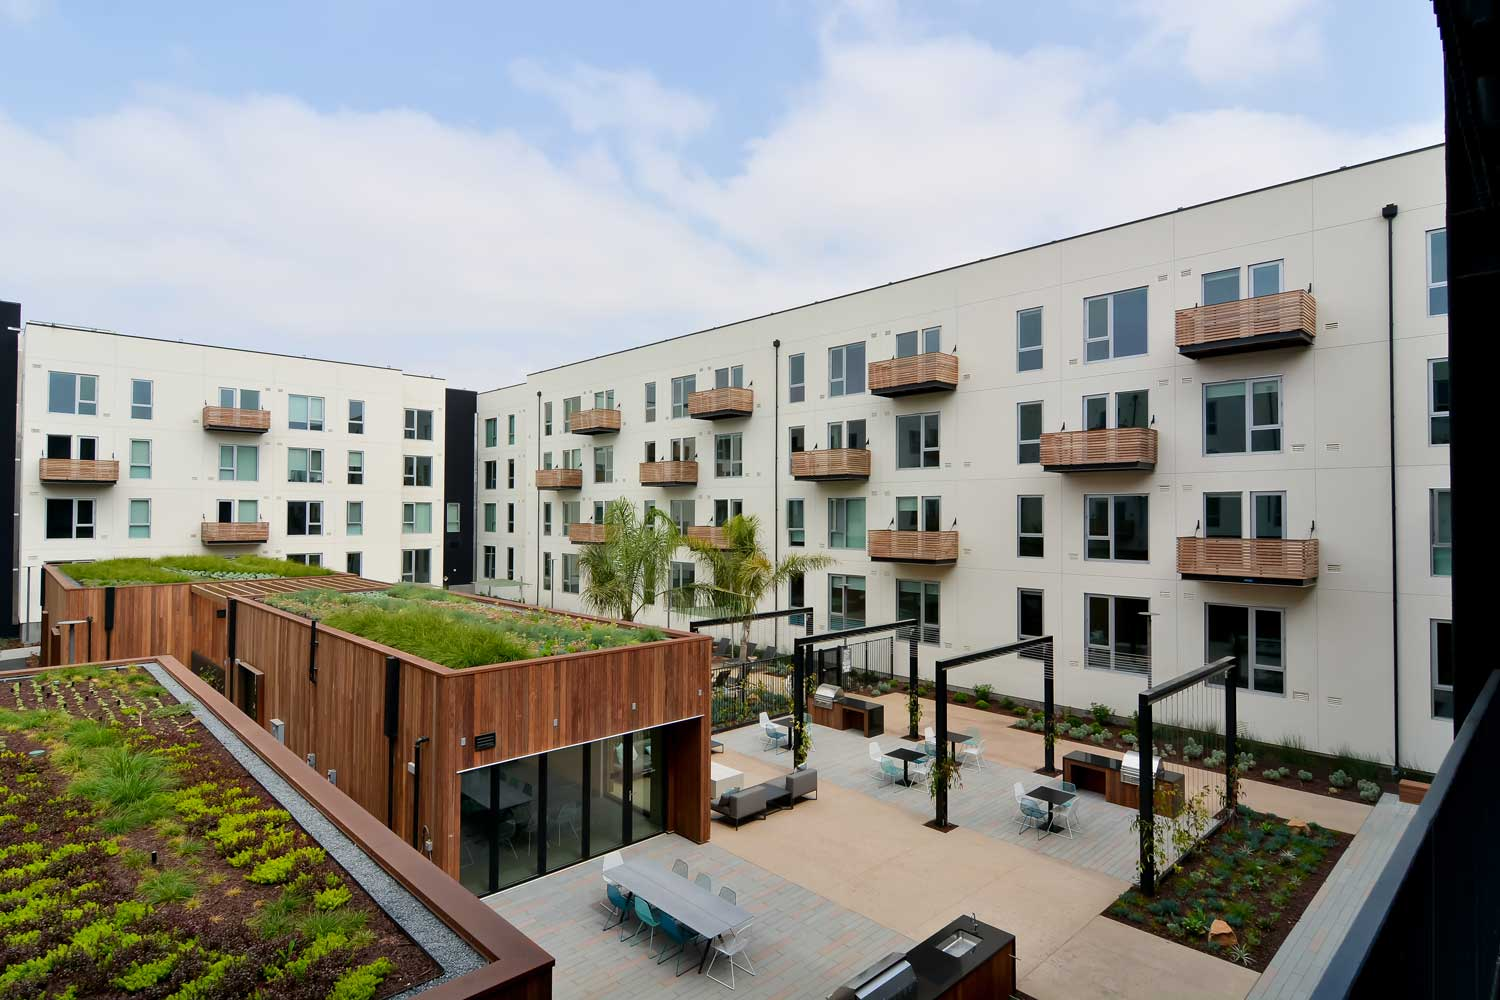 Union City California Apartments-The Union Flats Building Exterior with Lush Landscape and BBQ Grills